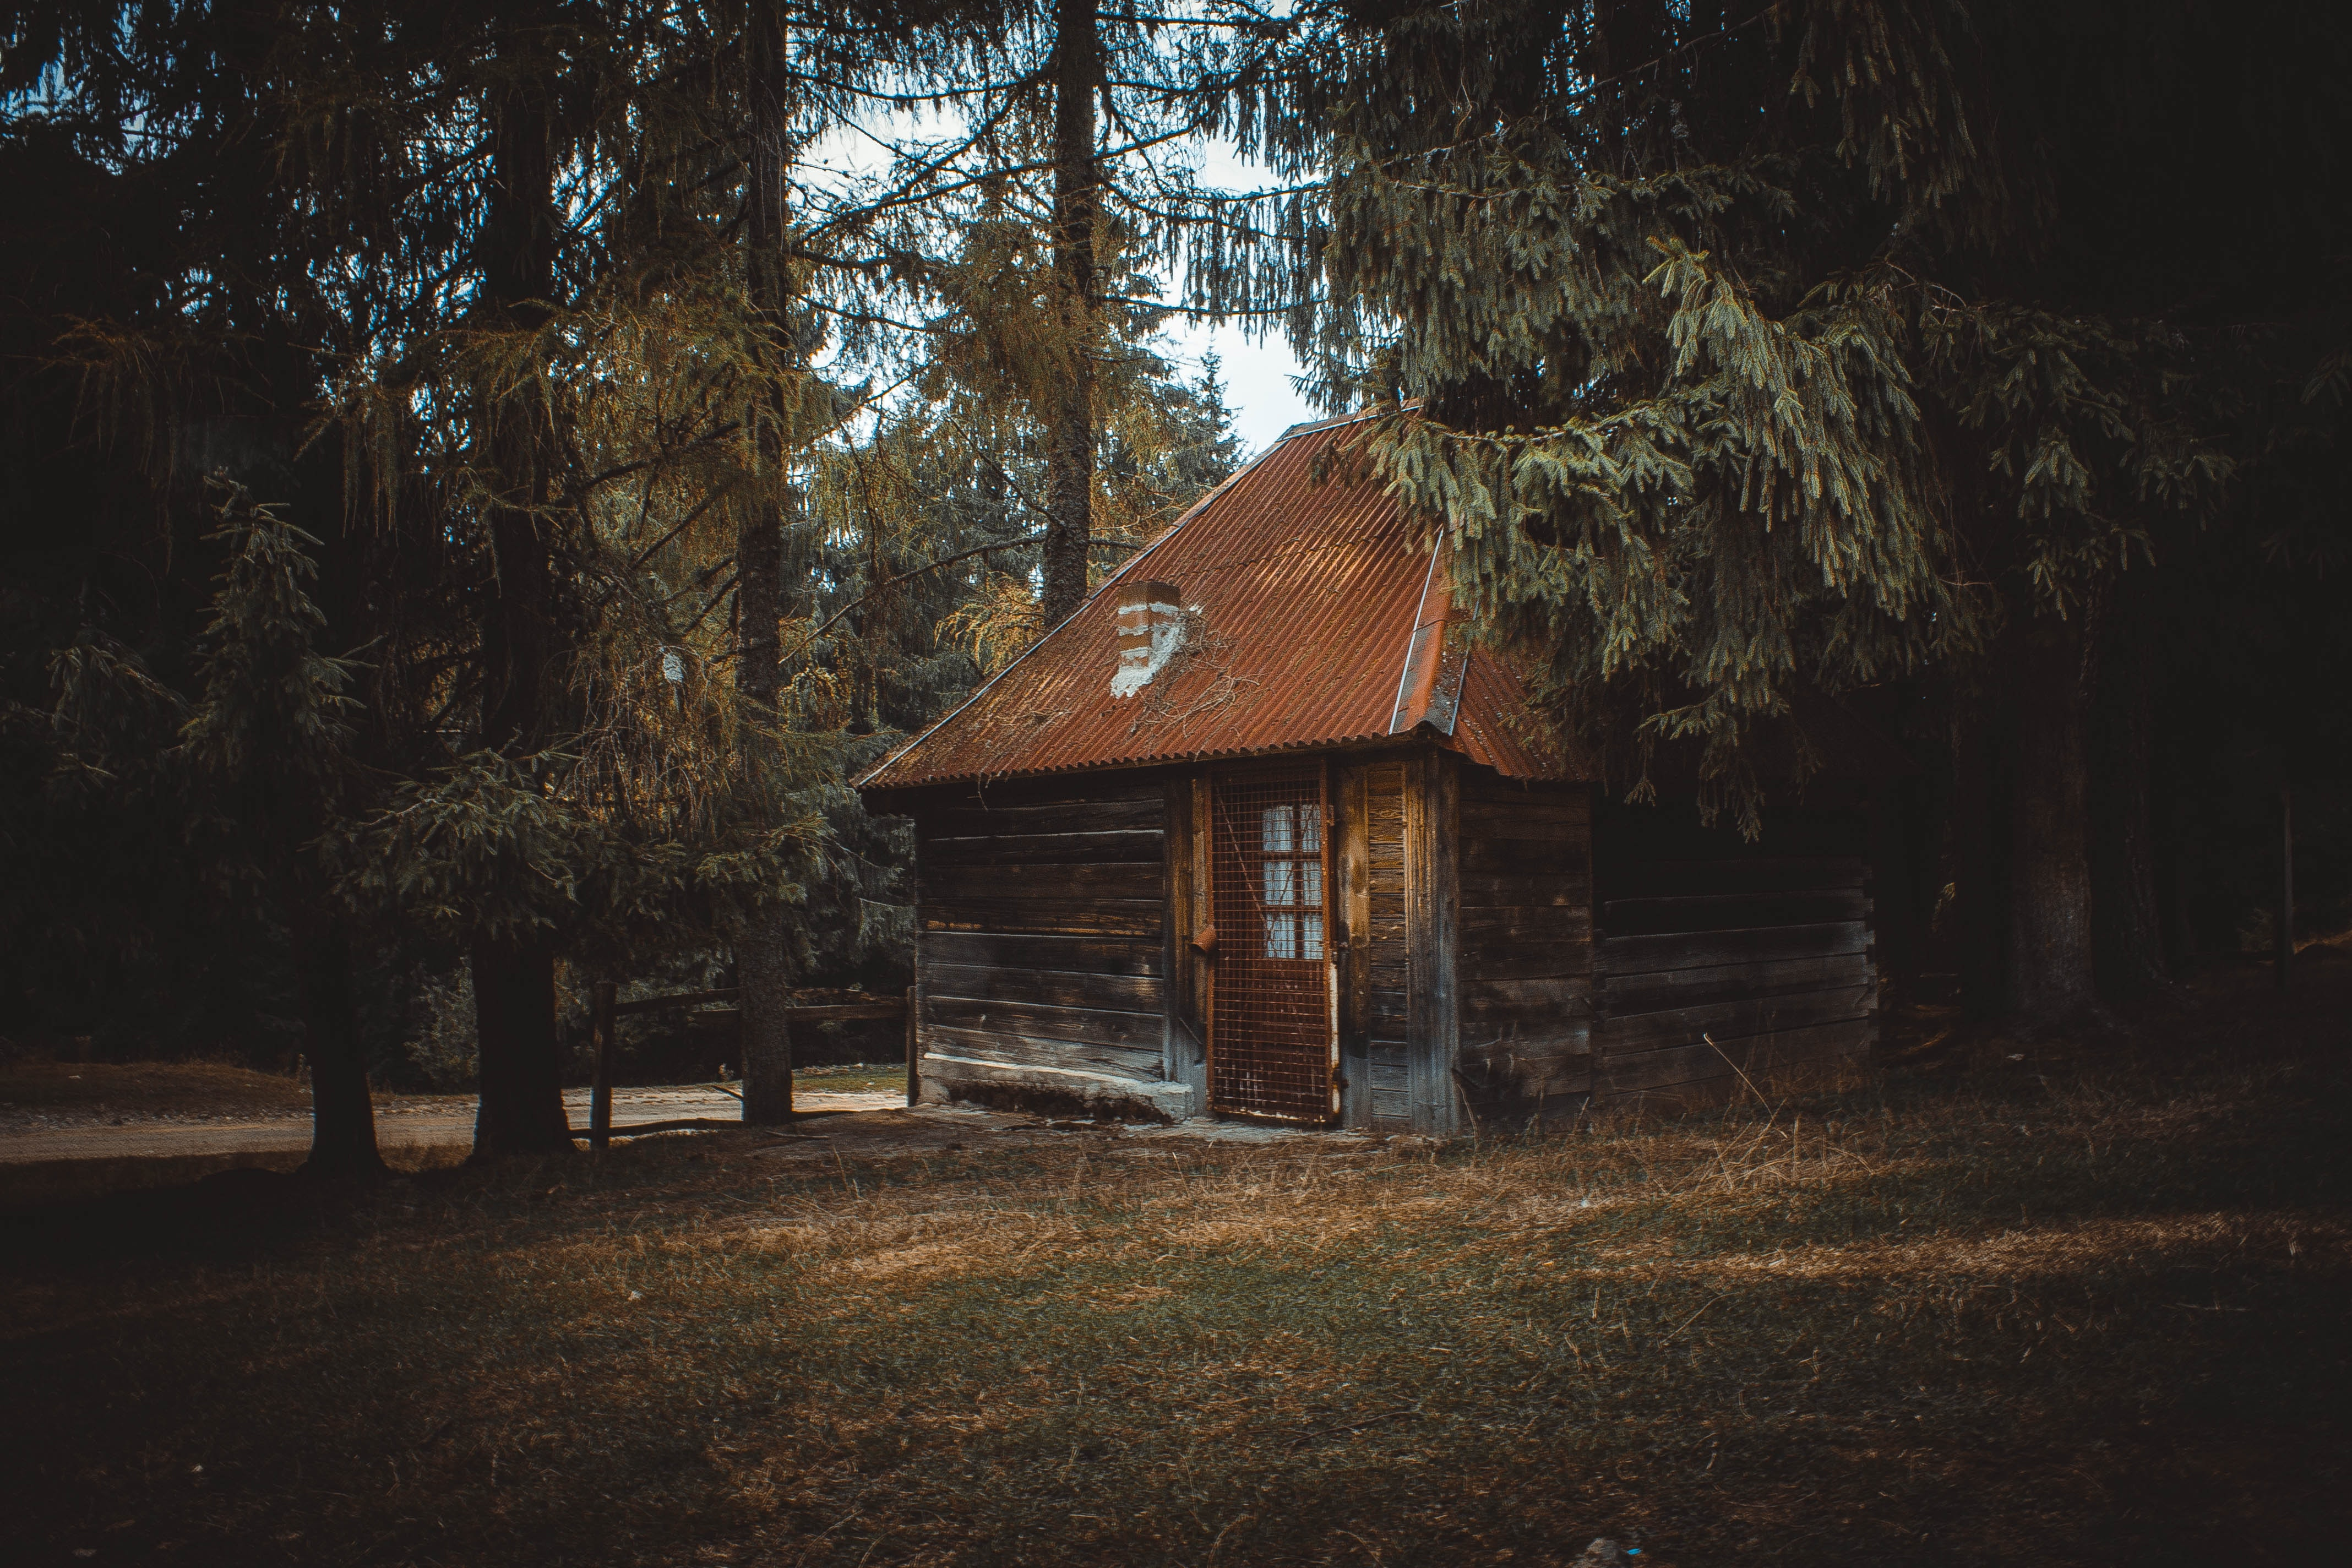 Wooden House on a Forest, Abandoned, Outdoors, Trees, Tranquil, HQ Photo